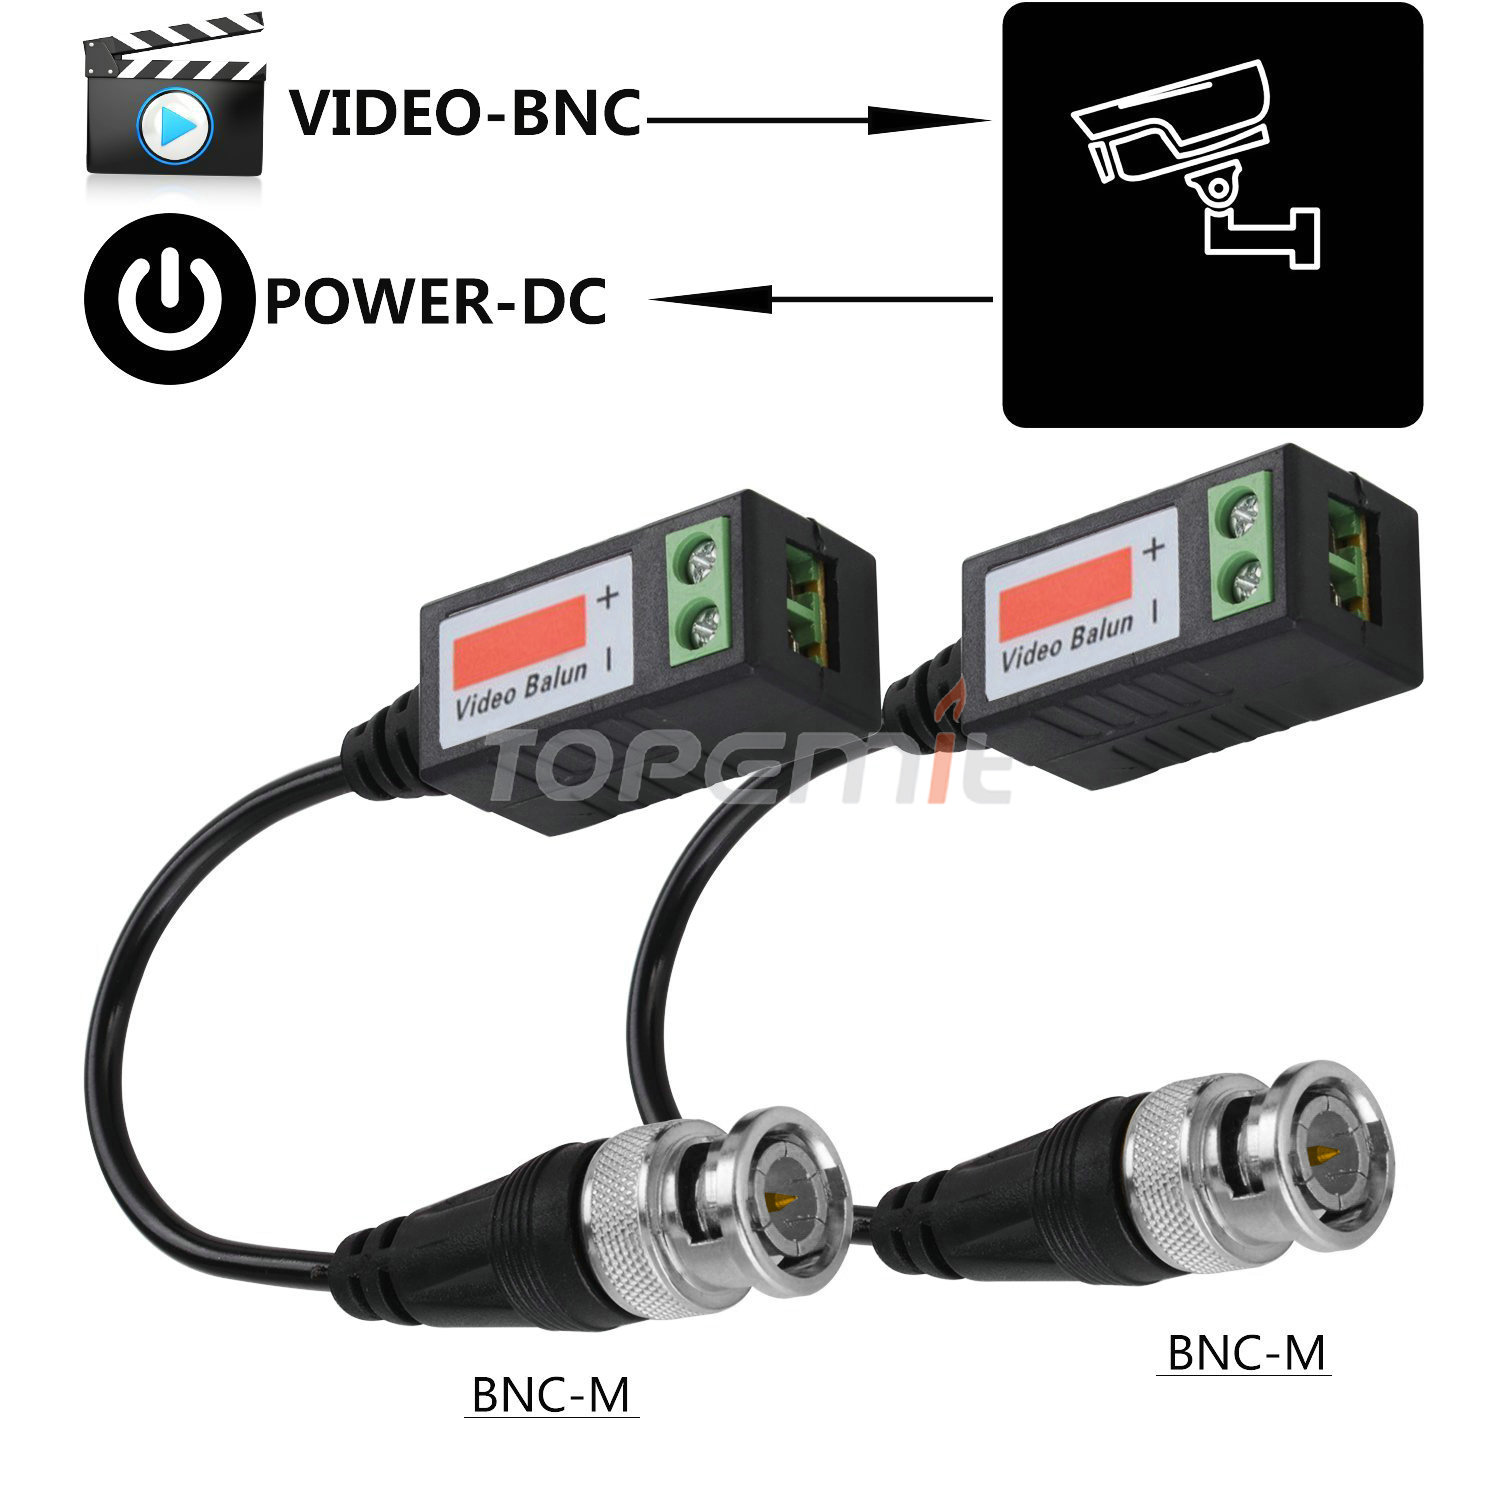 20 Pair KM CCTV Cam Passive Transceiver Video Balun Twisted BNC Connector Cable